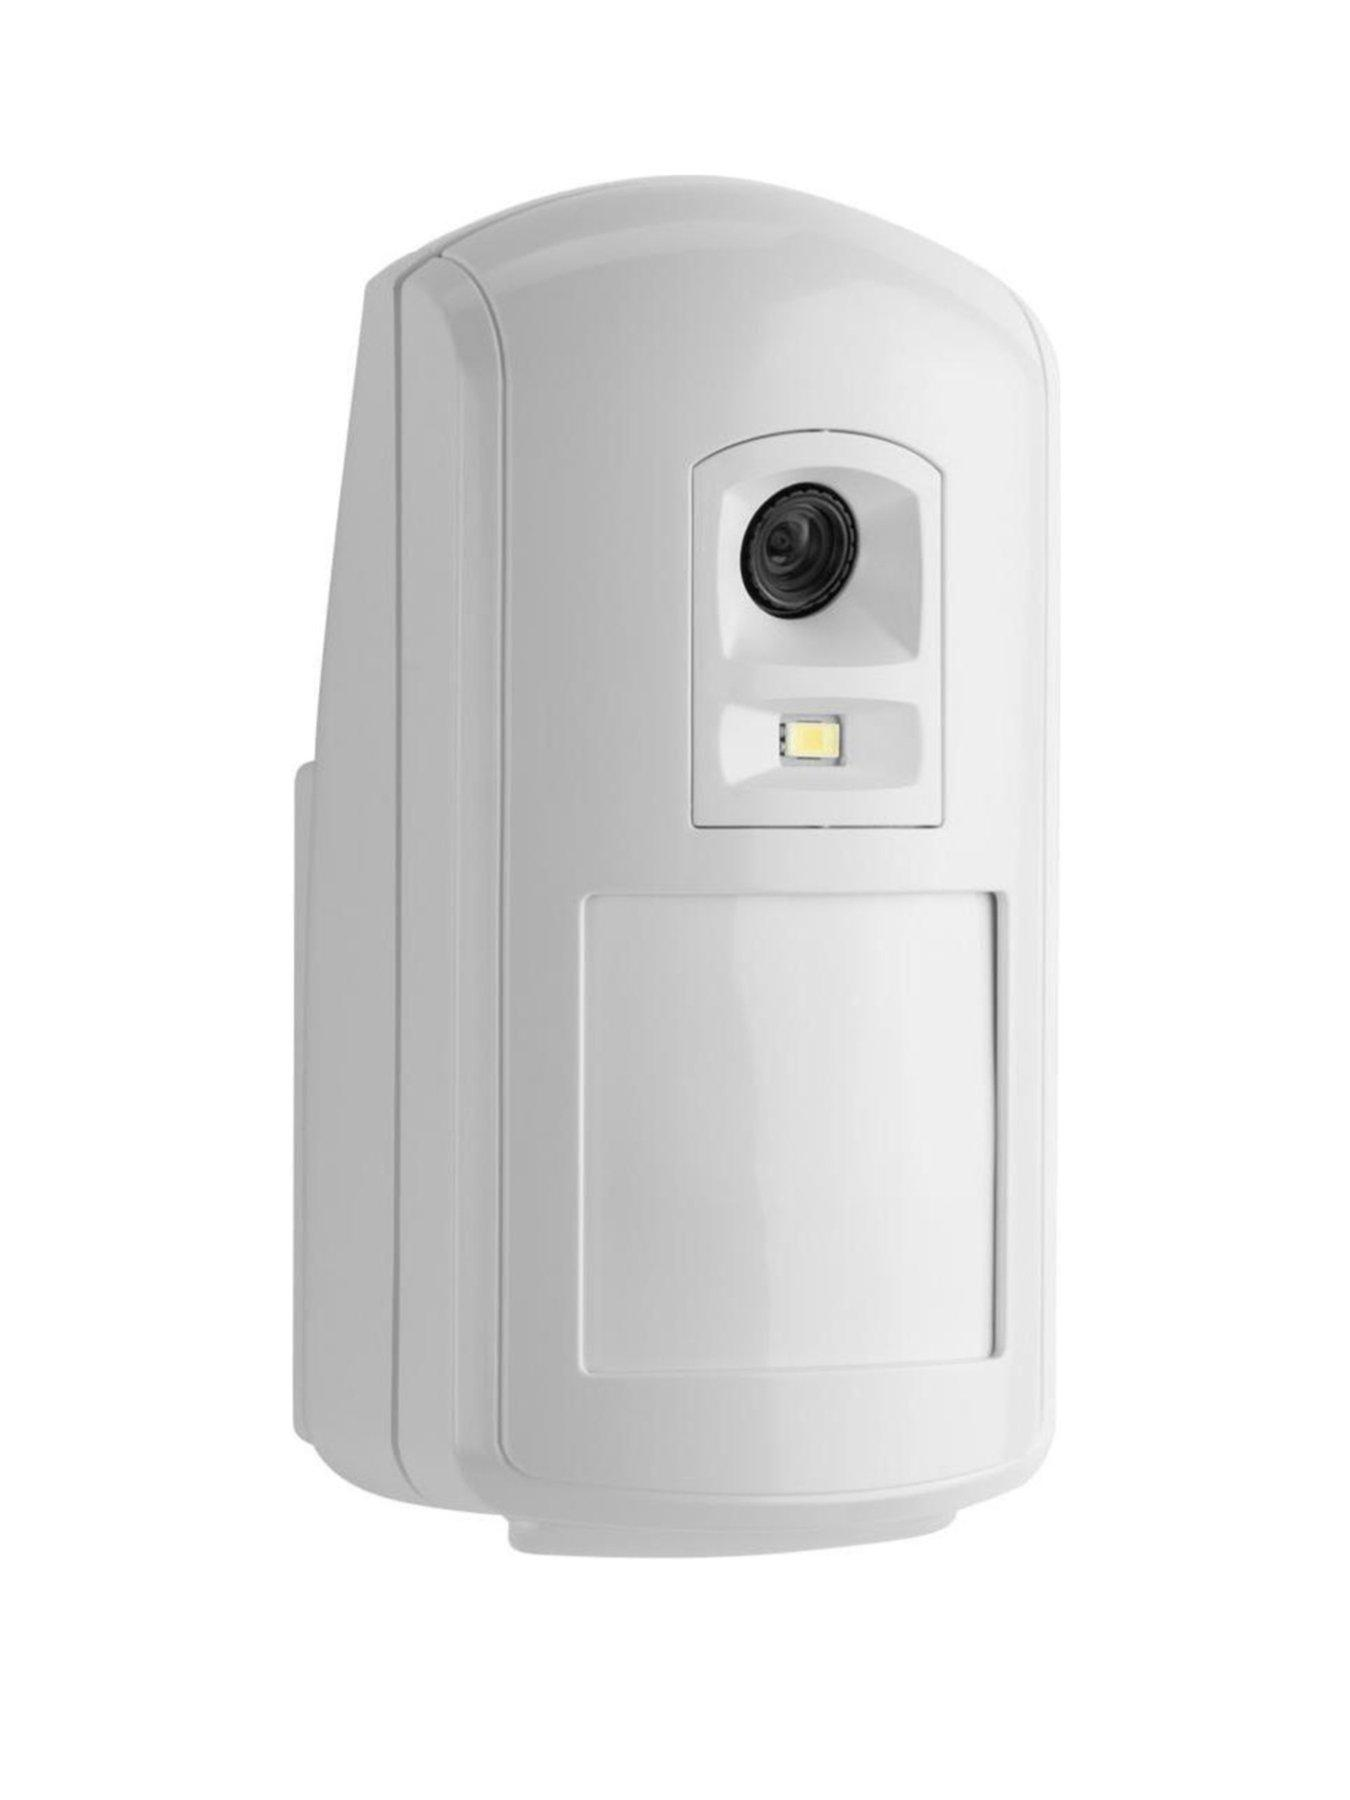 Compare prices for Honeywell Wireless Motion Sensor With Camera